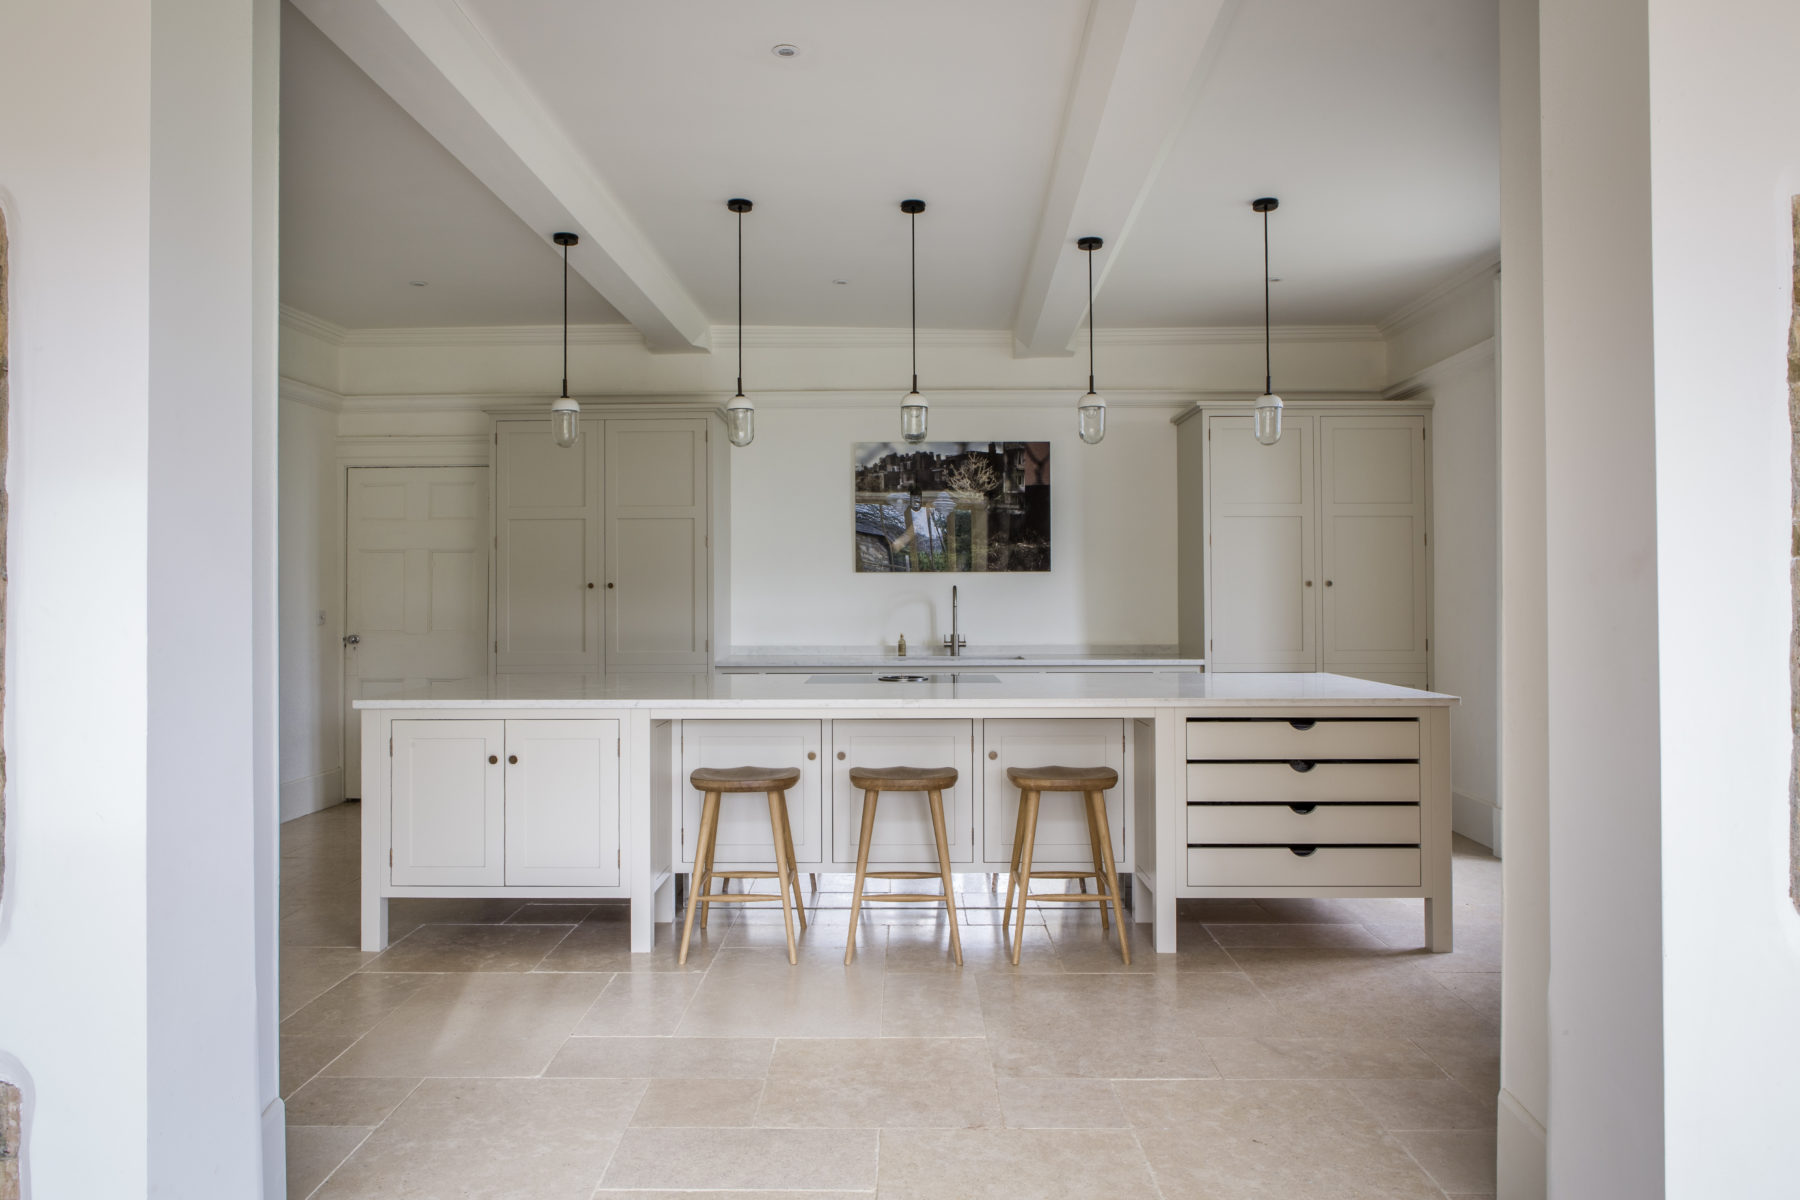 Langstaff-Ellis Luxury Cotswold Kitchen